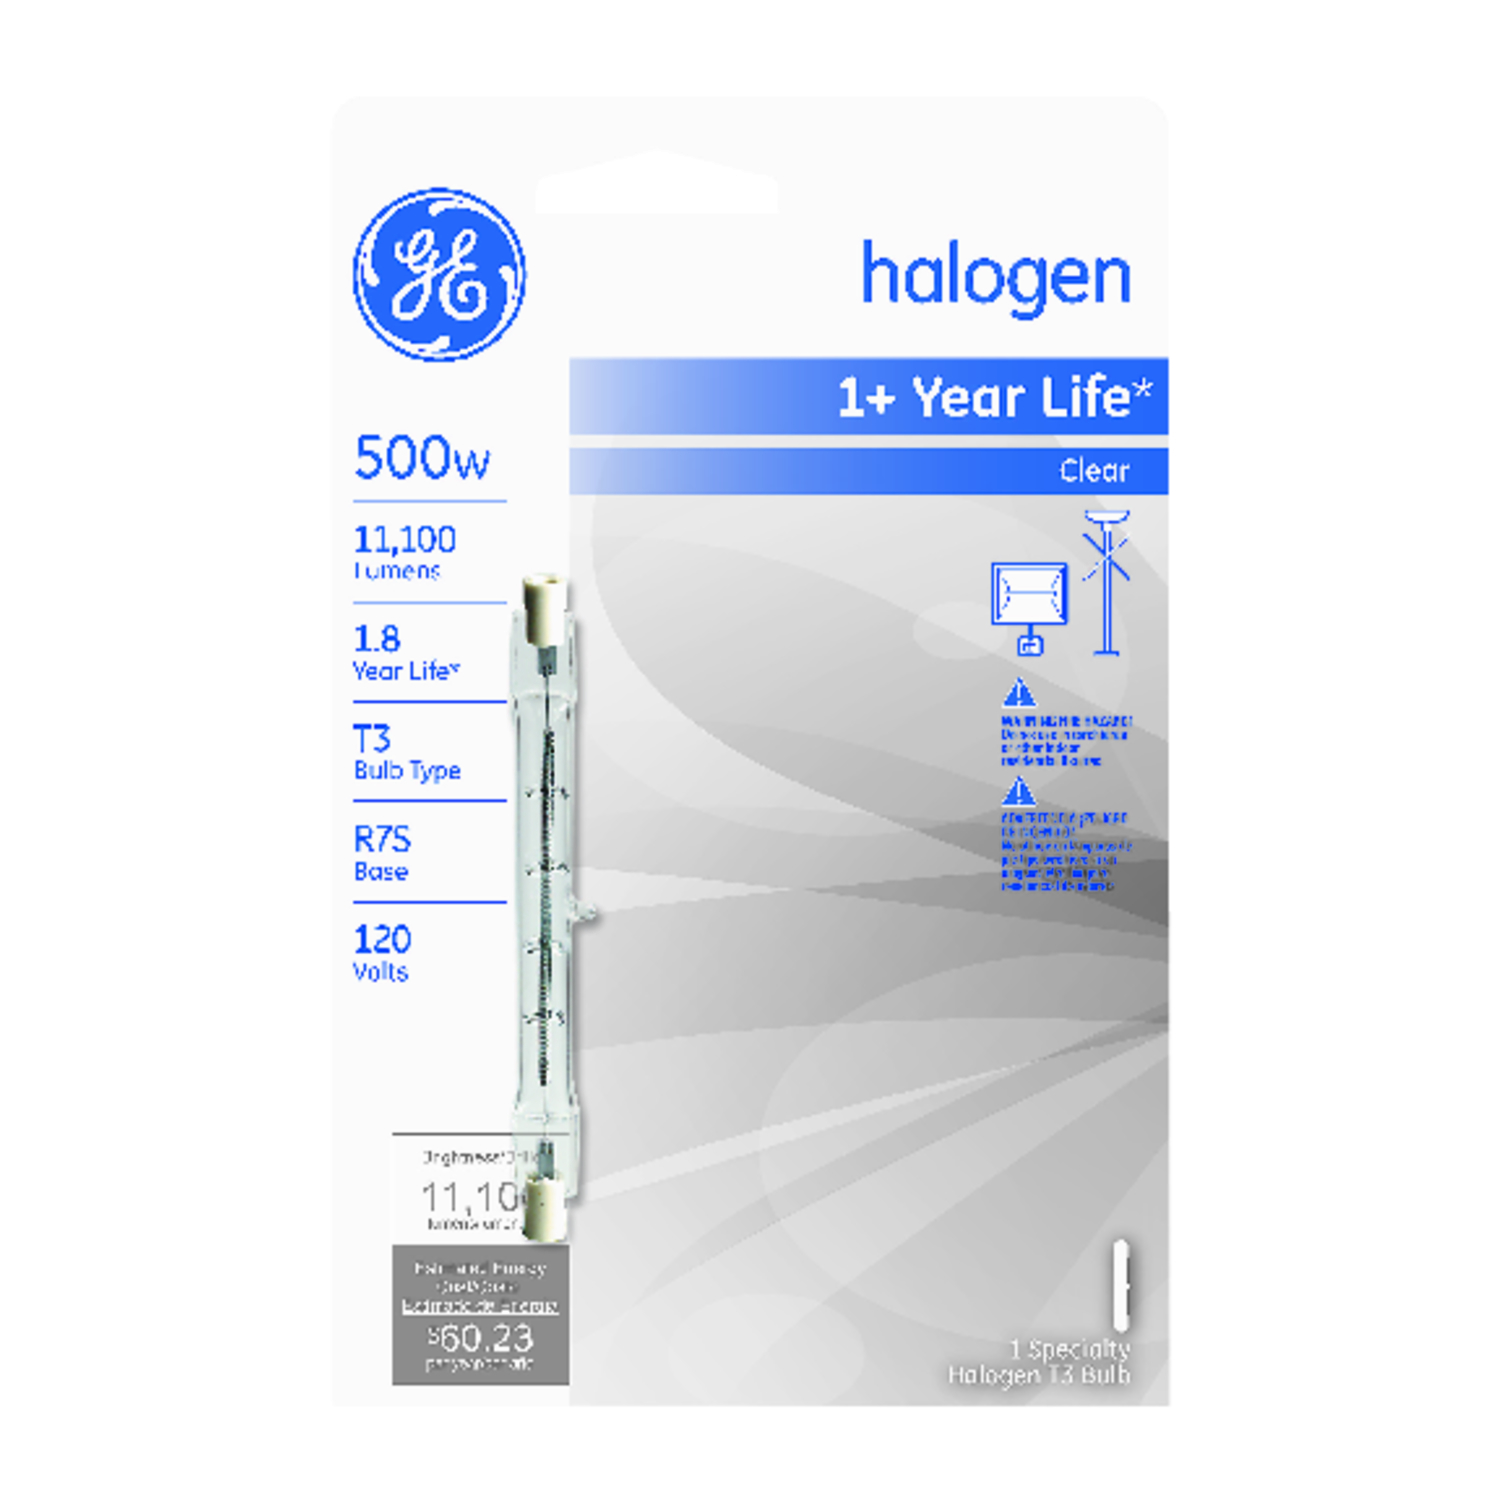 GE Lighting  500 watts T3  Halogen Bulb  11100 lumens White  1 pk Specialty